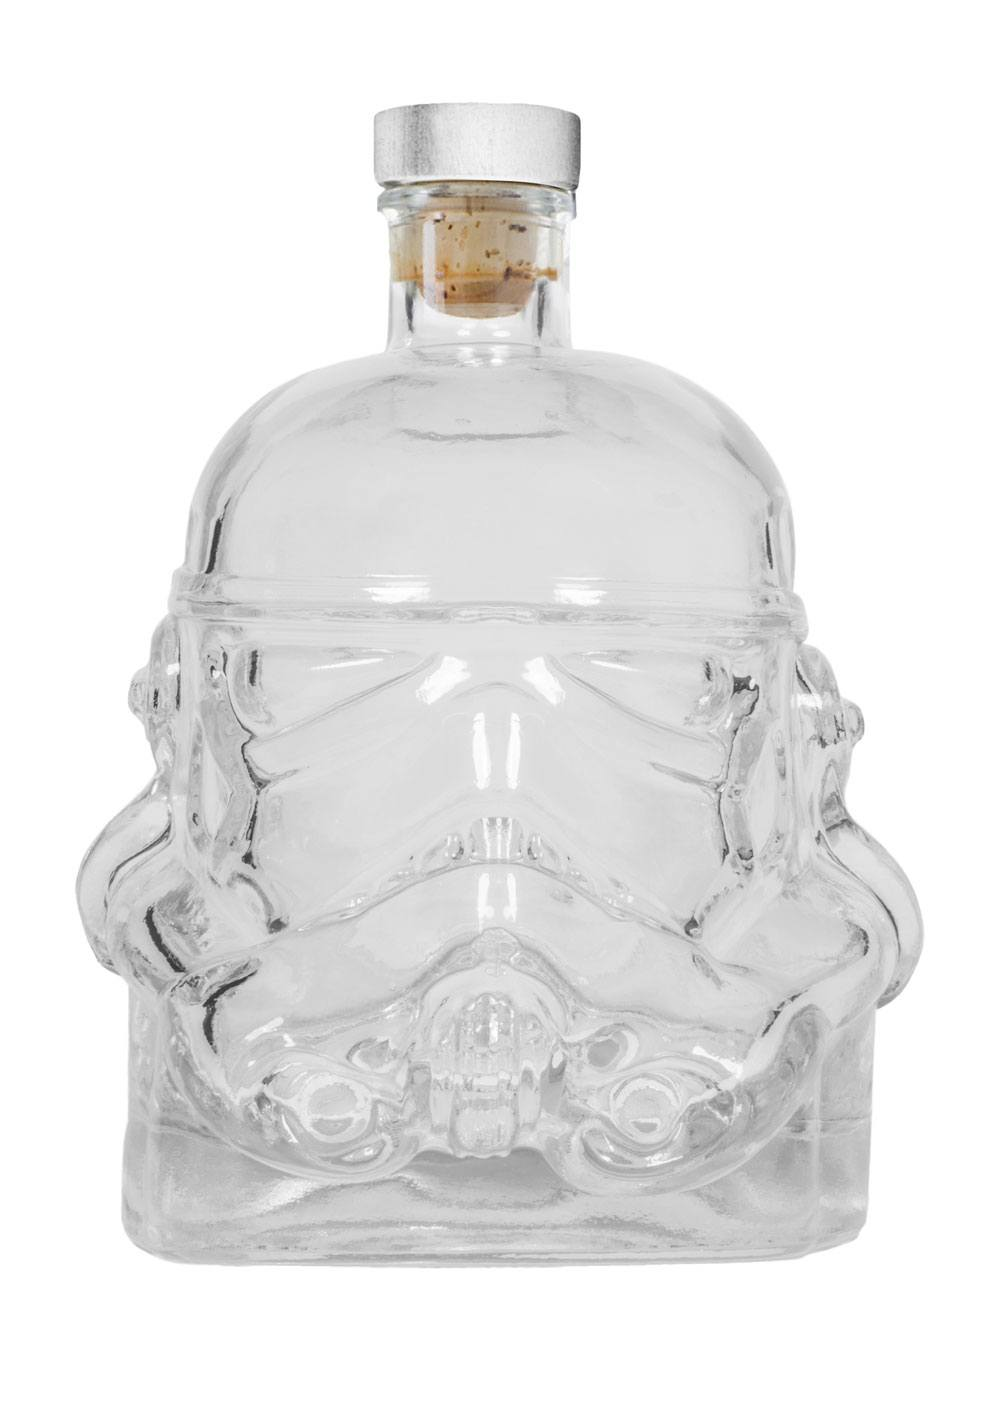 Original Stormtrooper Decanter